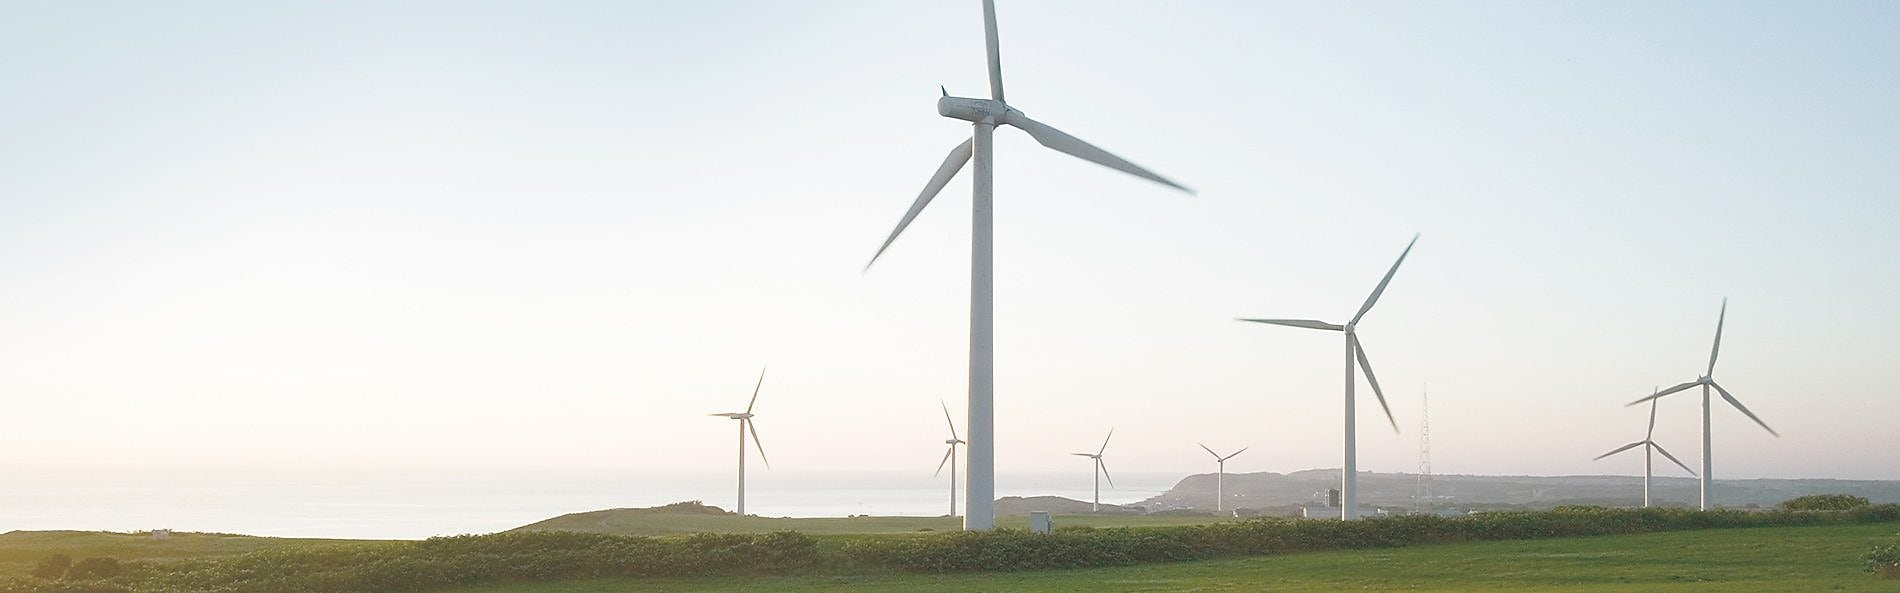 a view of a wind turbine farm